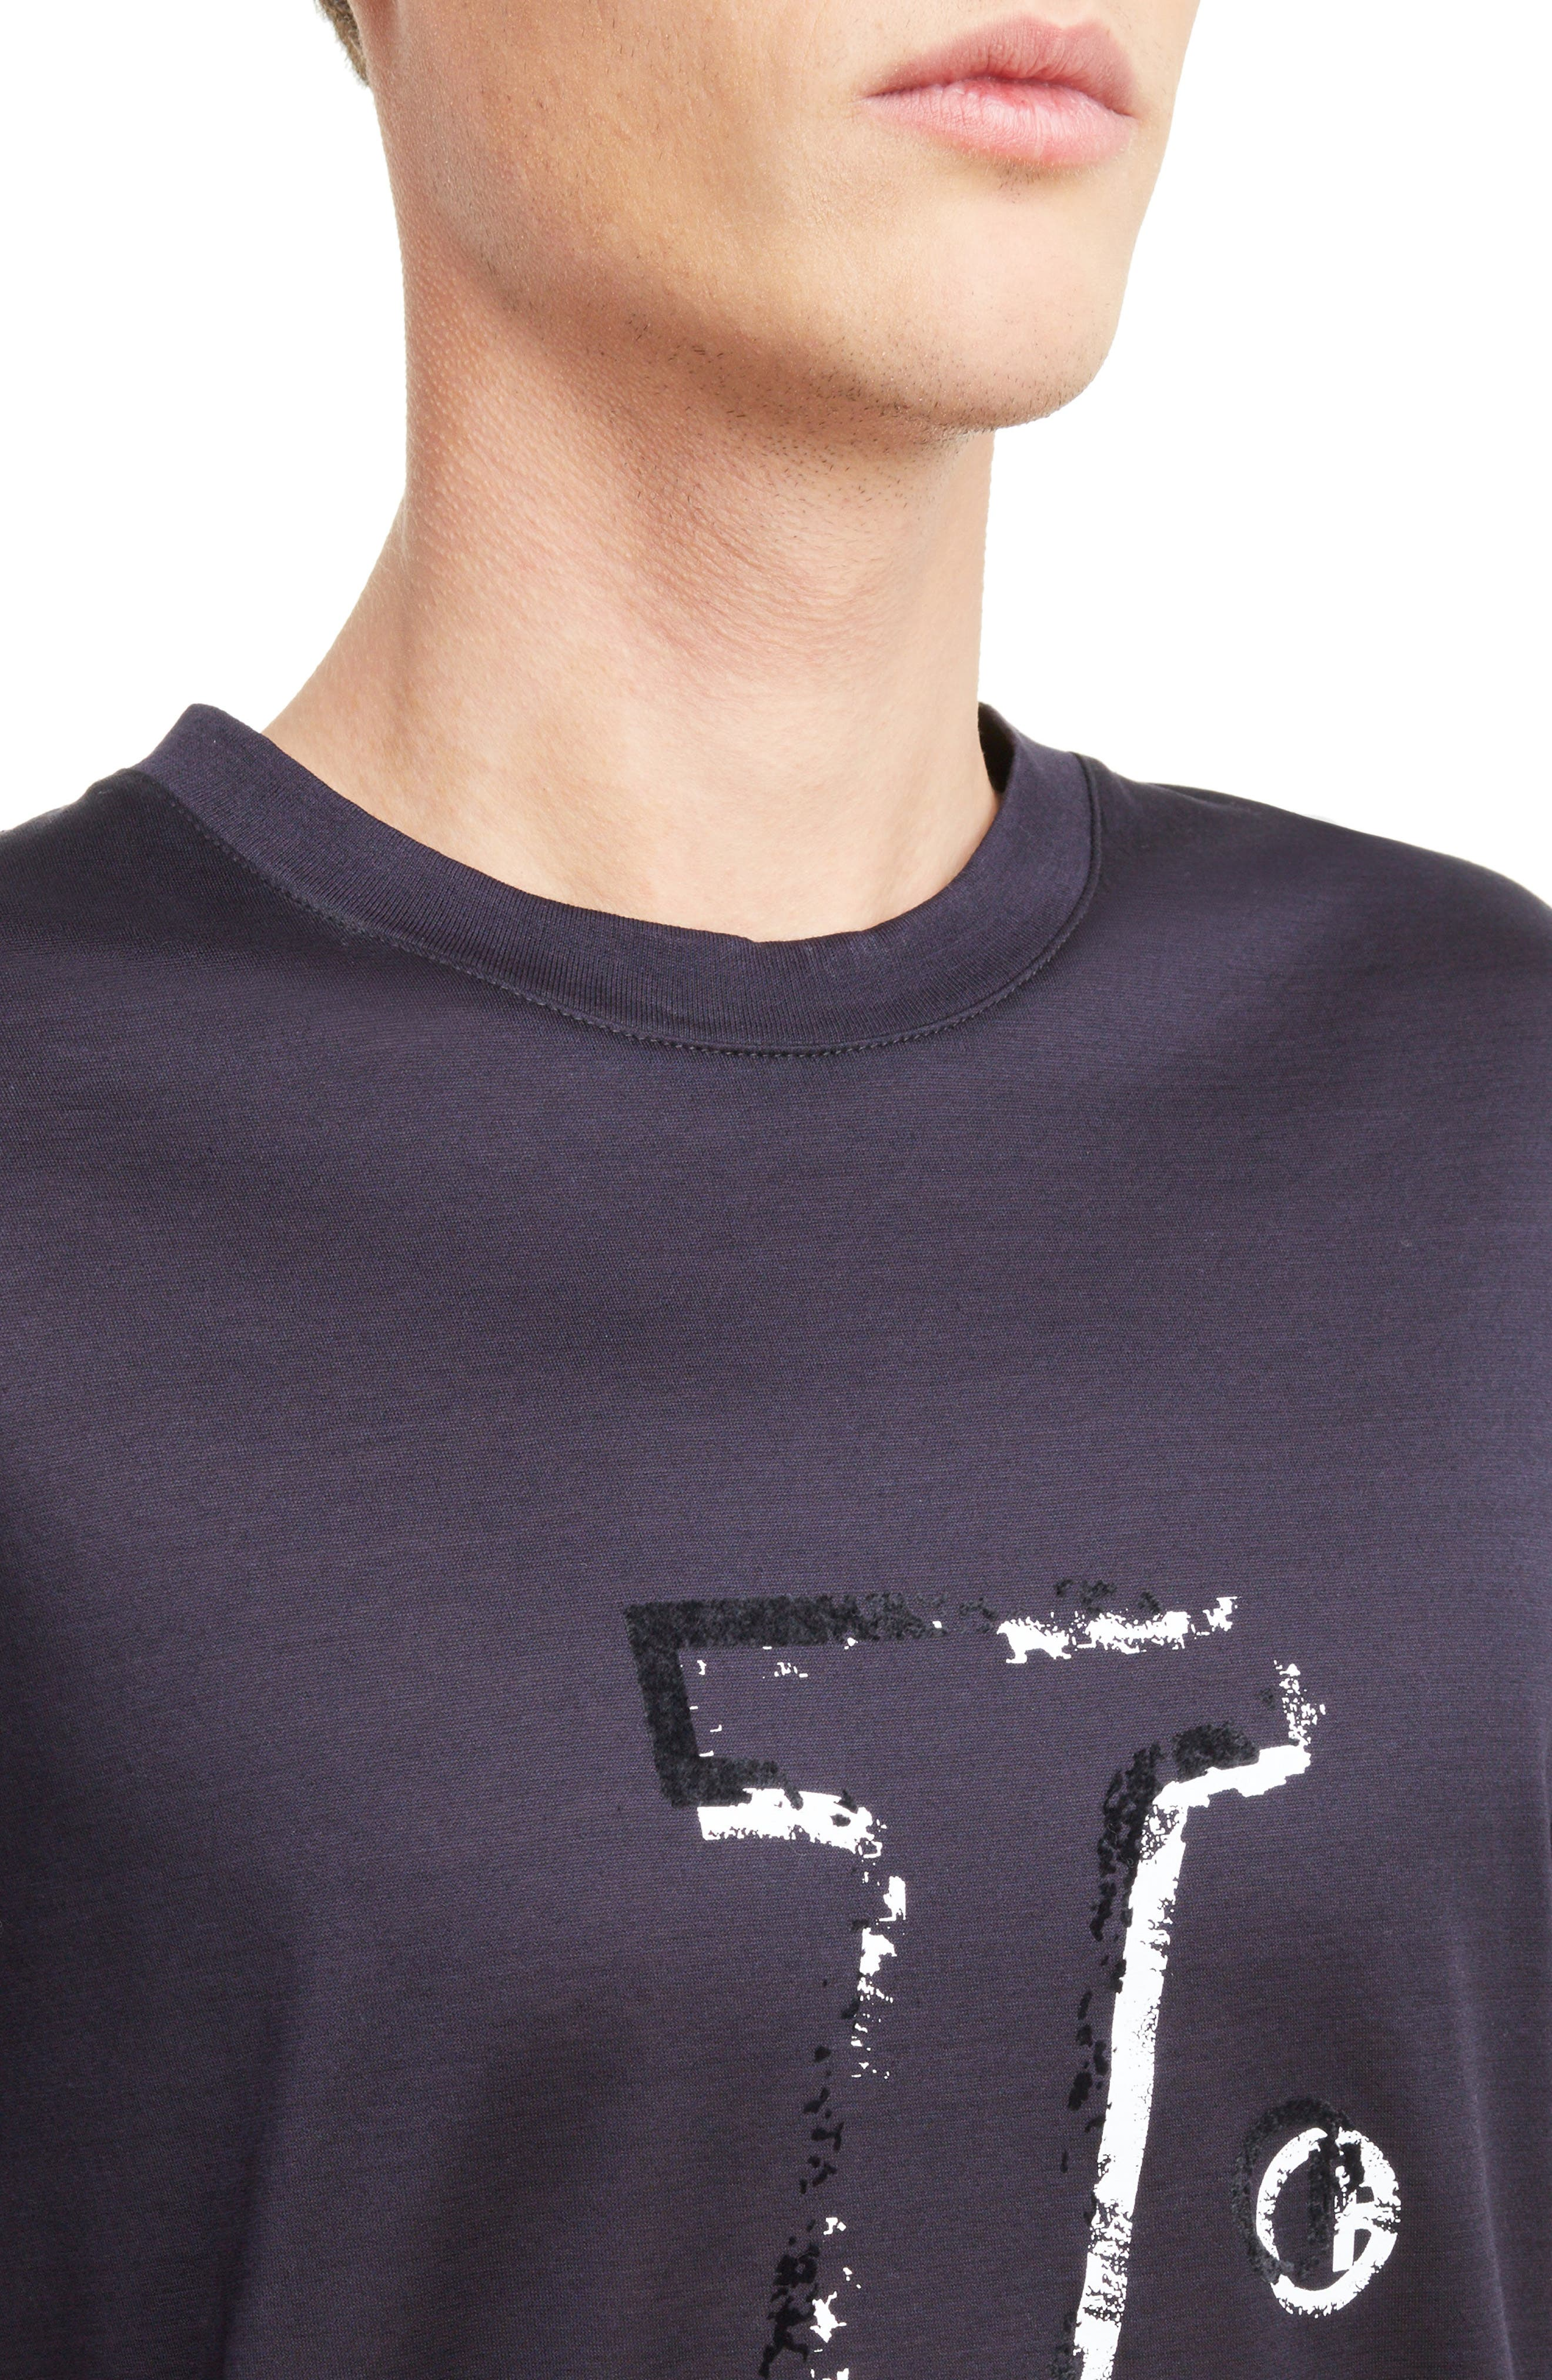 Graphic T-Shirt,                             Alternate thumbnail 4, color,                             Midnight Blue